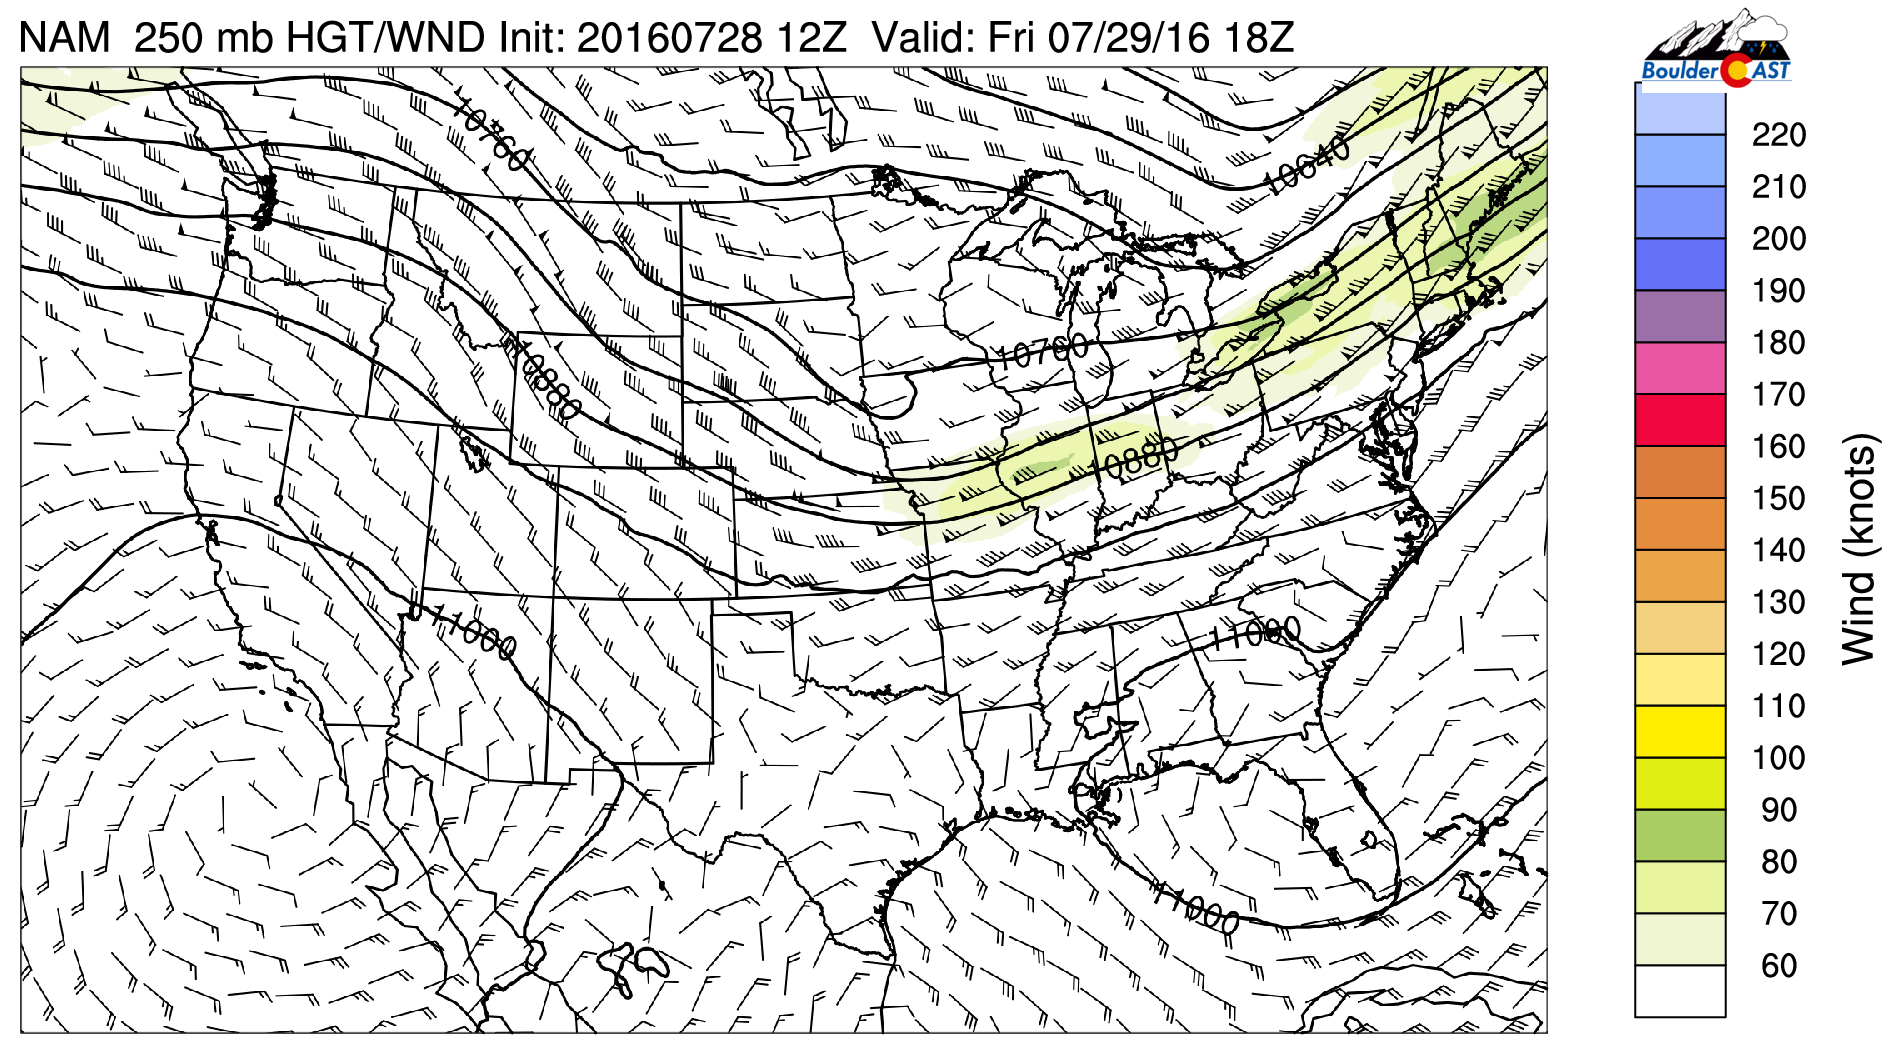 NAM 250 mb heights and winds for this afternoon